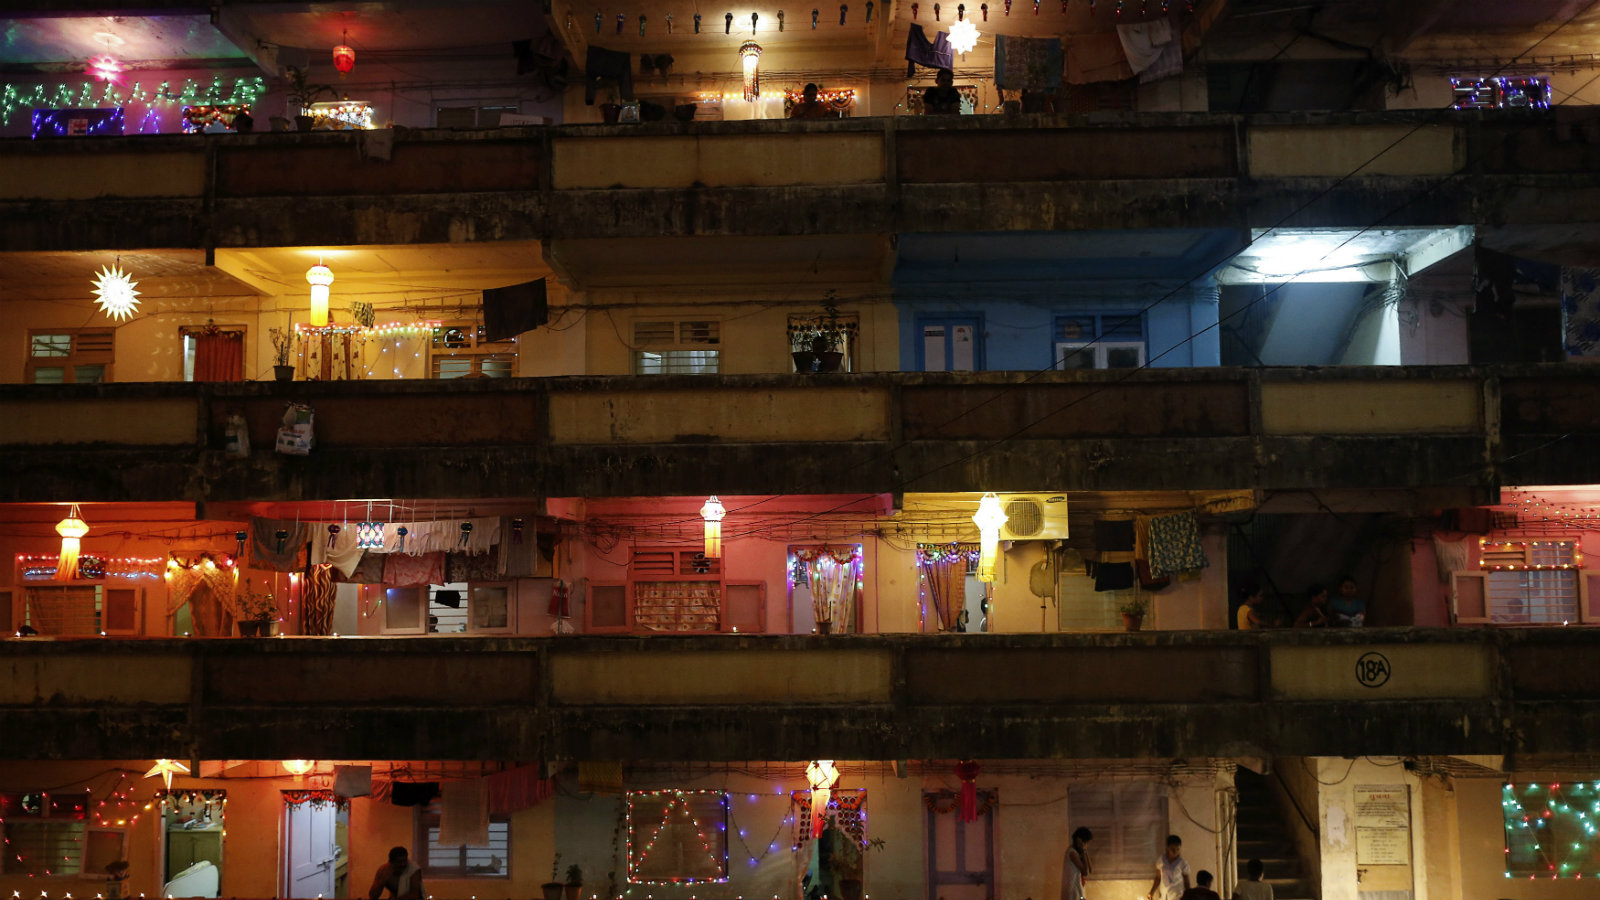 A chawl, or tenement of tiny, inexpensive apartments, in Mumbai.